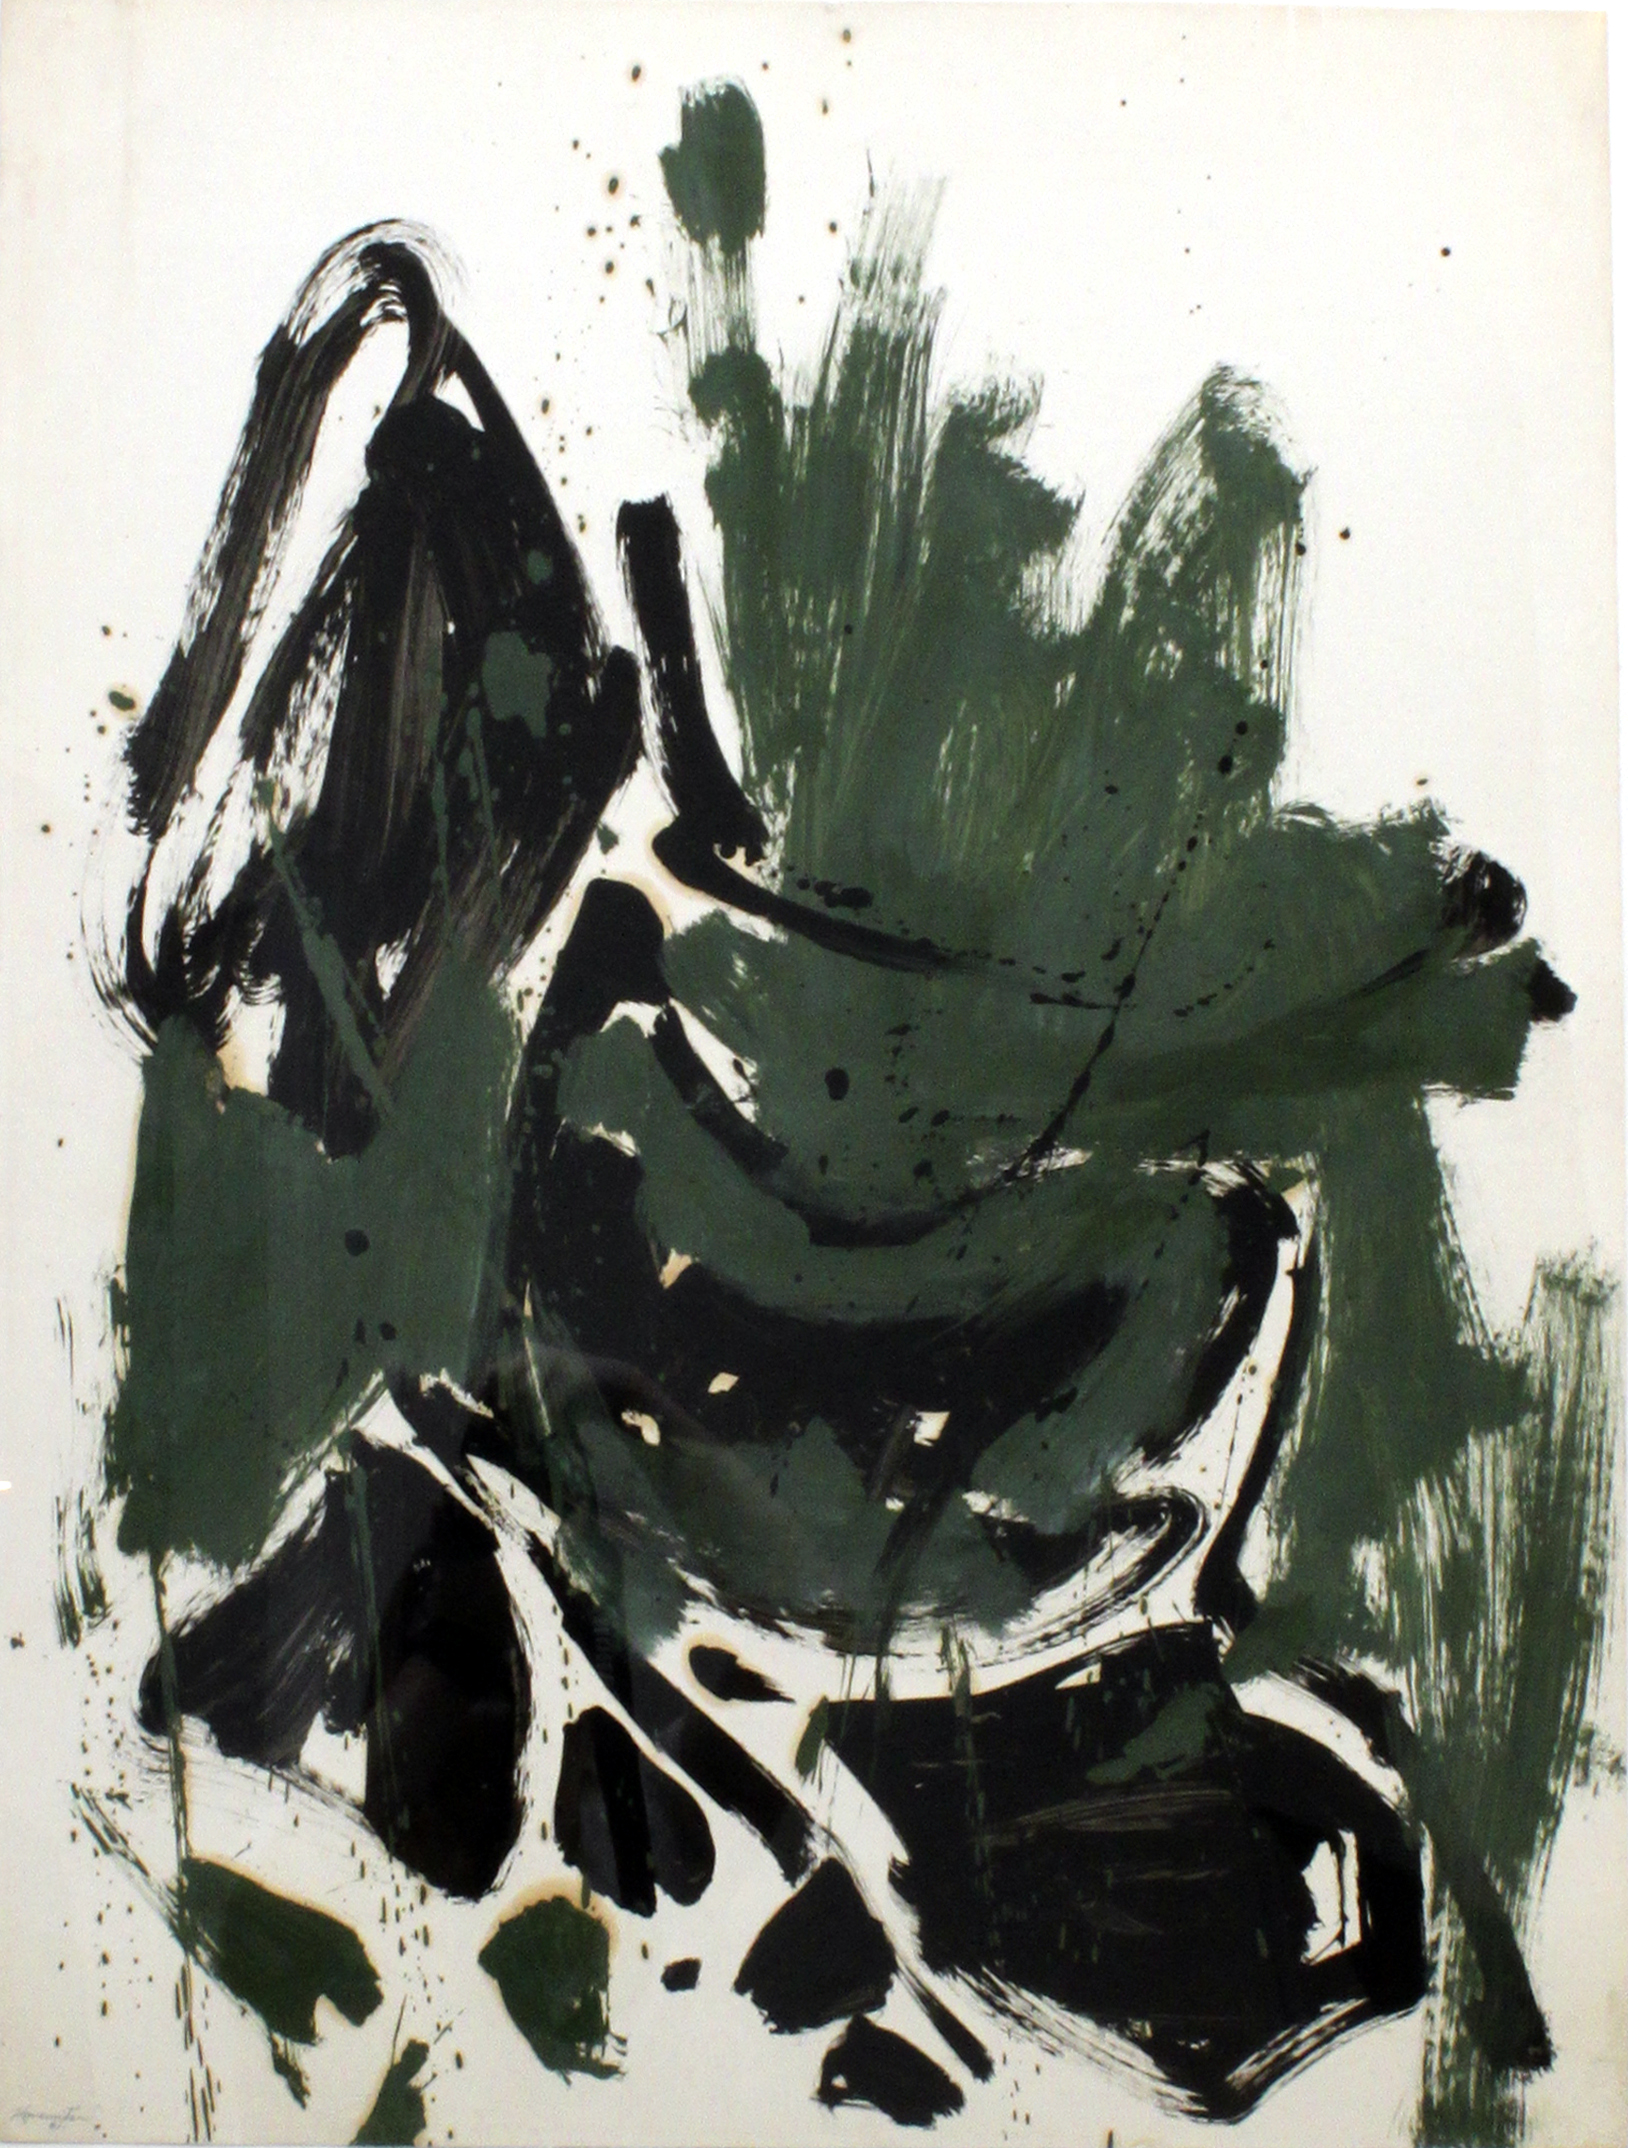 Abstraction (Green, Black, Brown)